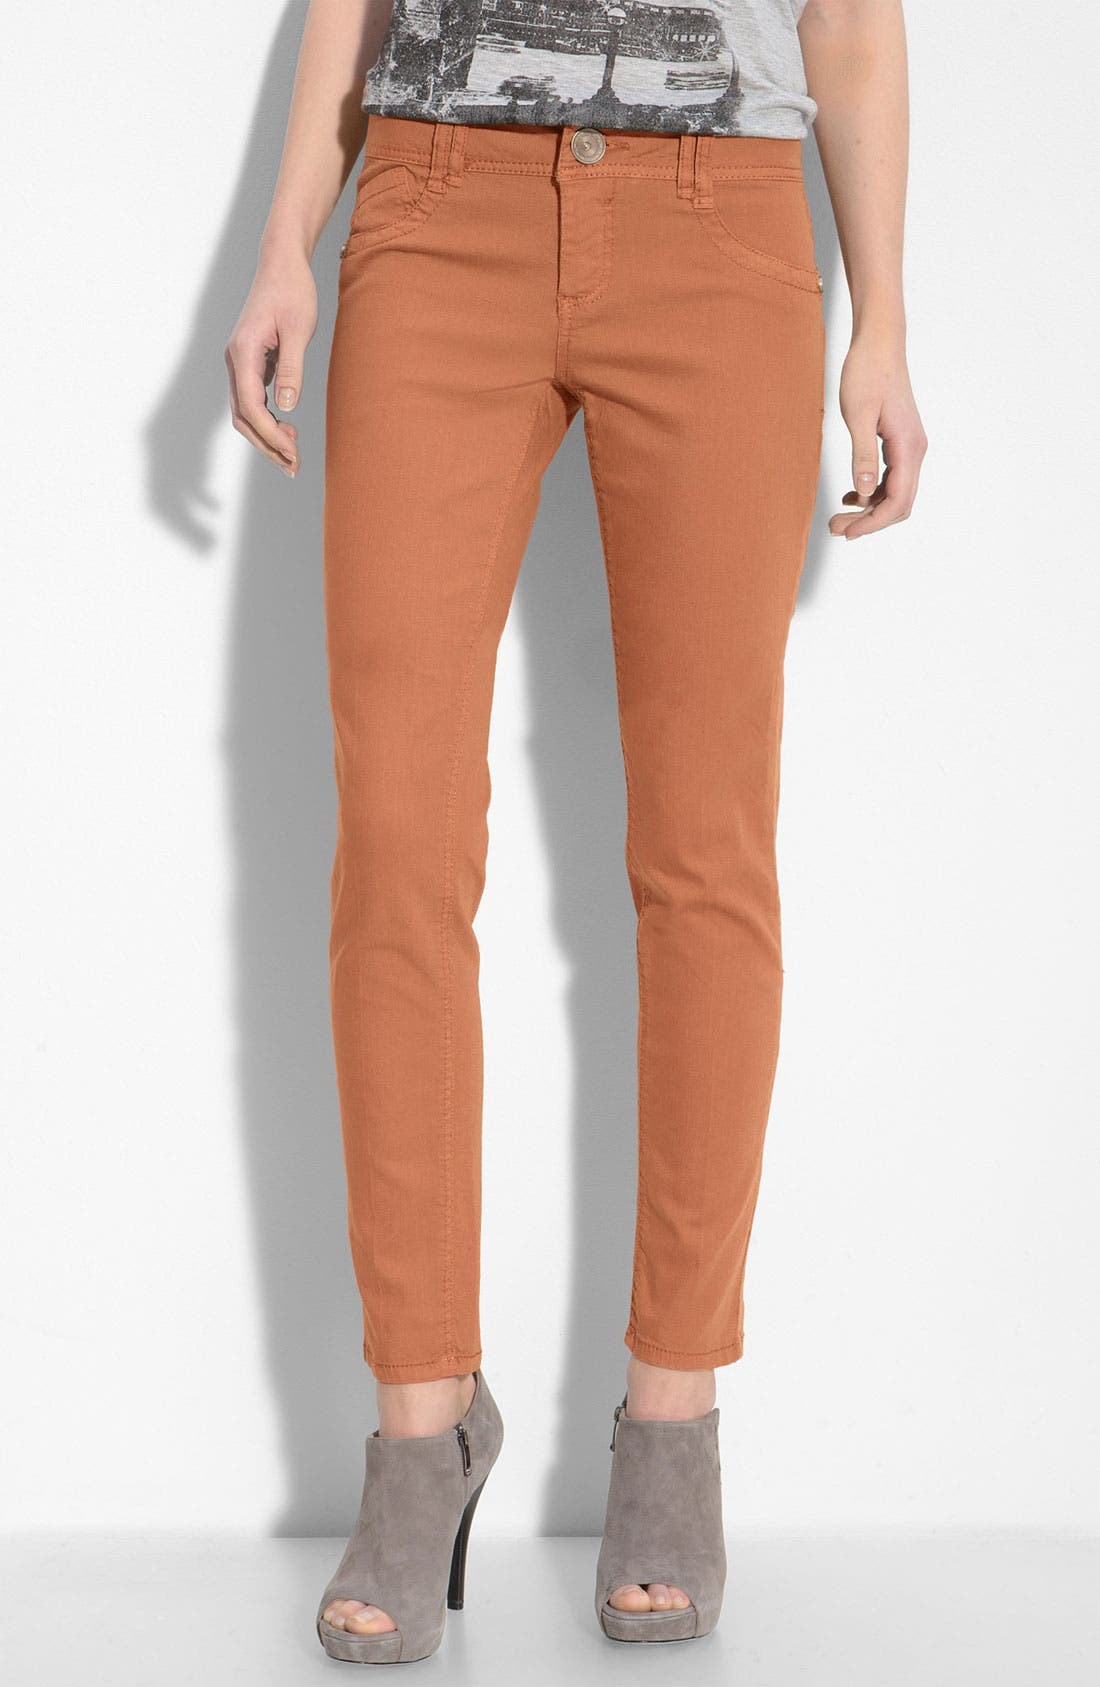 Alternate Image 1 Selected - Wit & Wisdom Color Skinny Jeans (Nordstrom Exclusive)